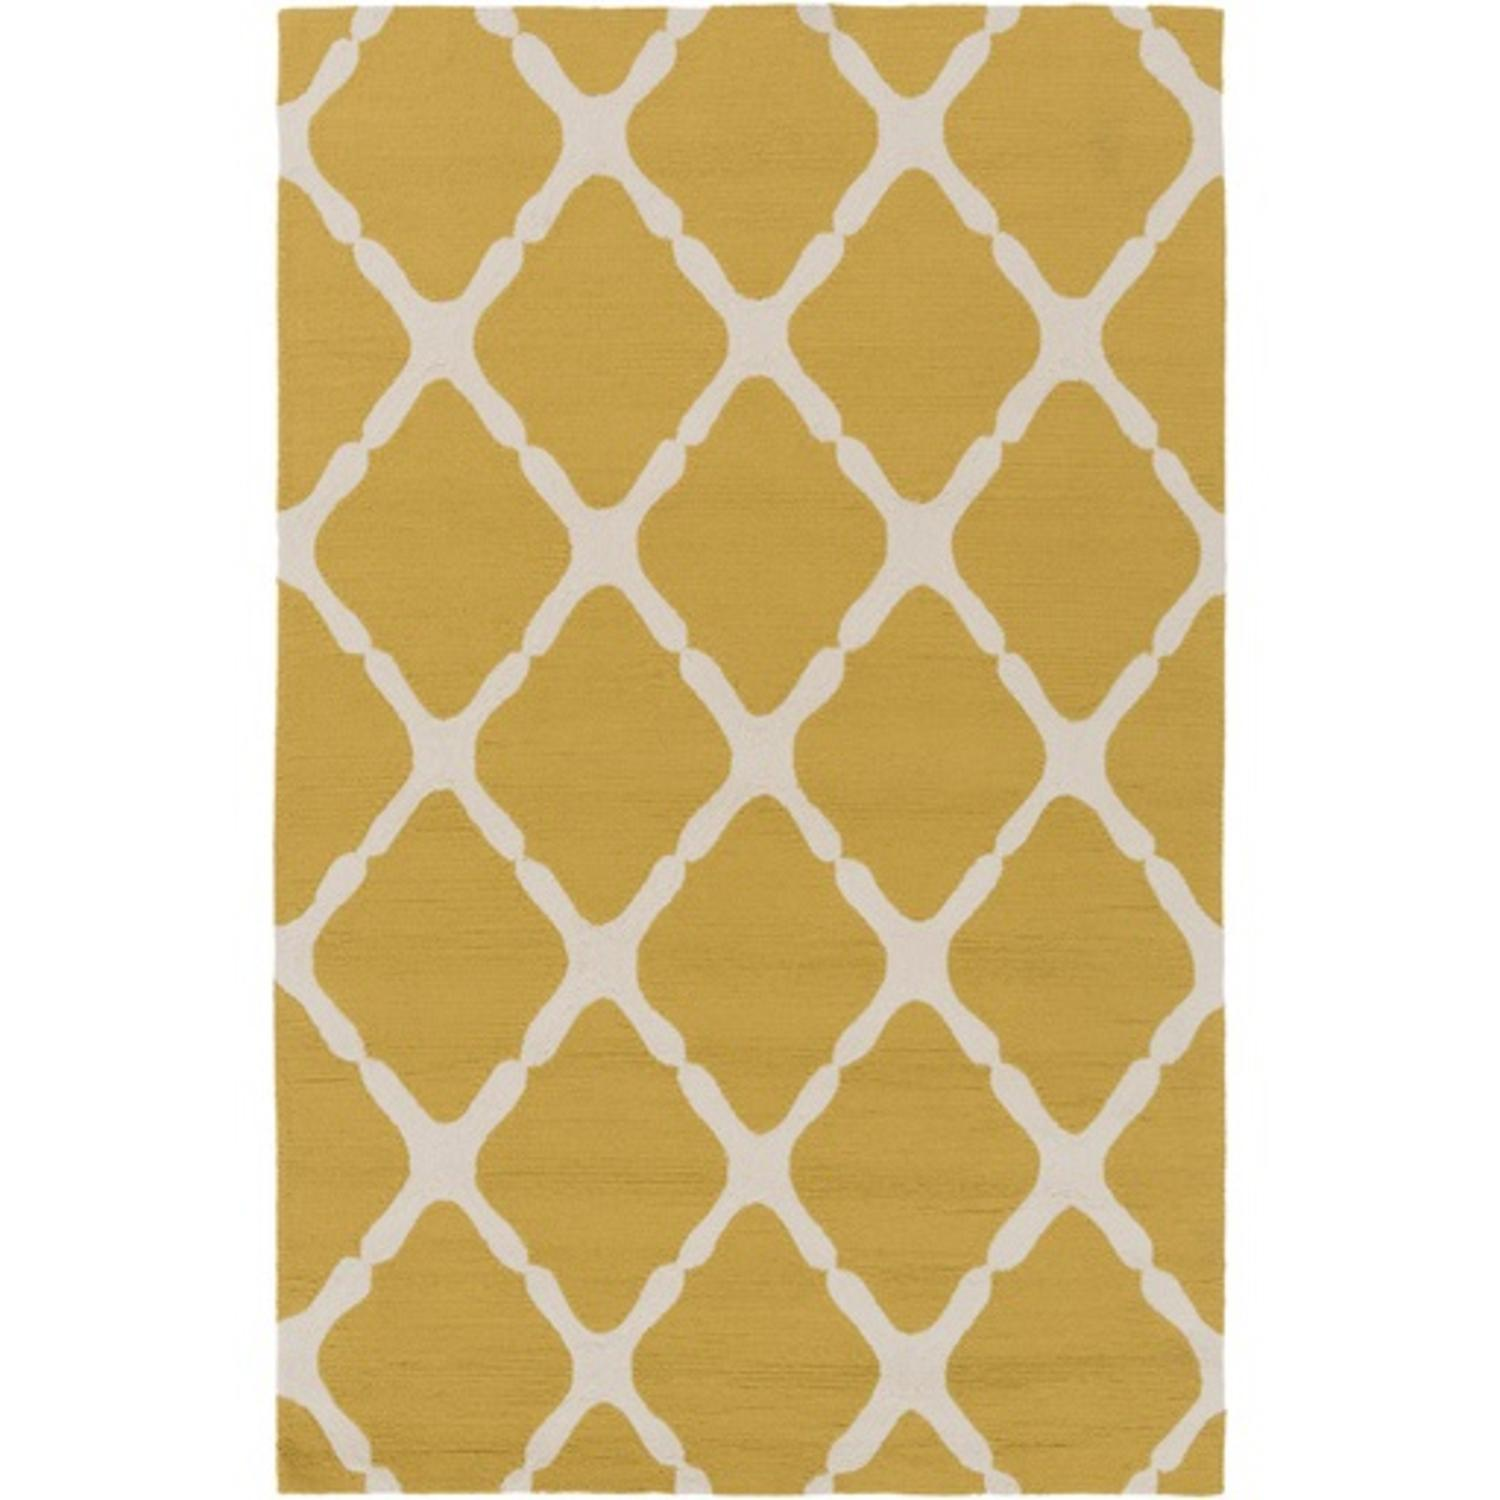 2u0027 X 3u0027 Mending Fences Mustard Yellow And Light Gray Hand Hooked Area Throw